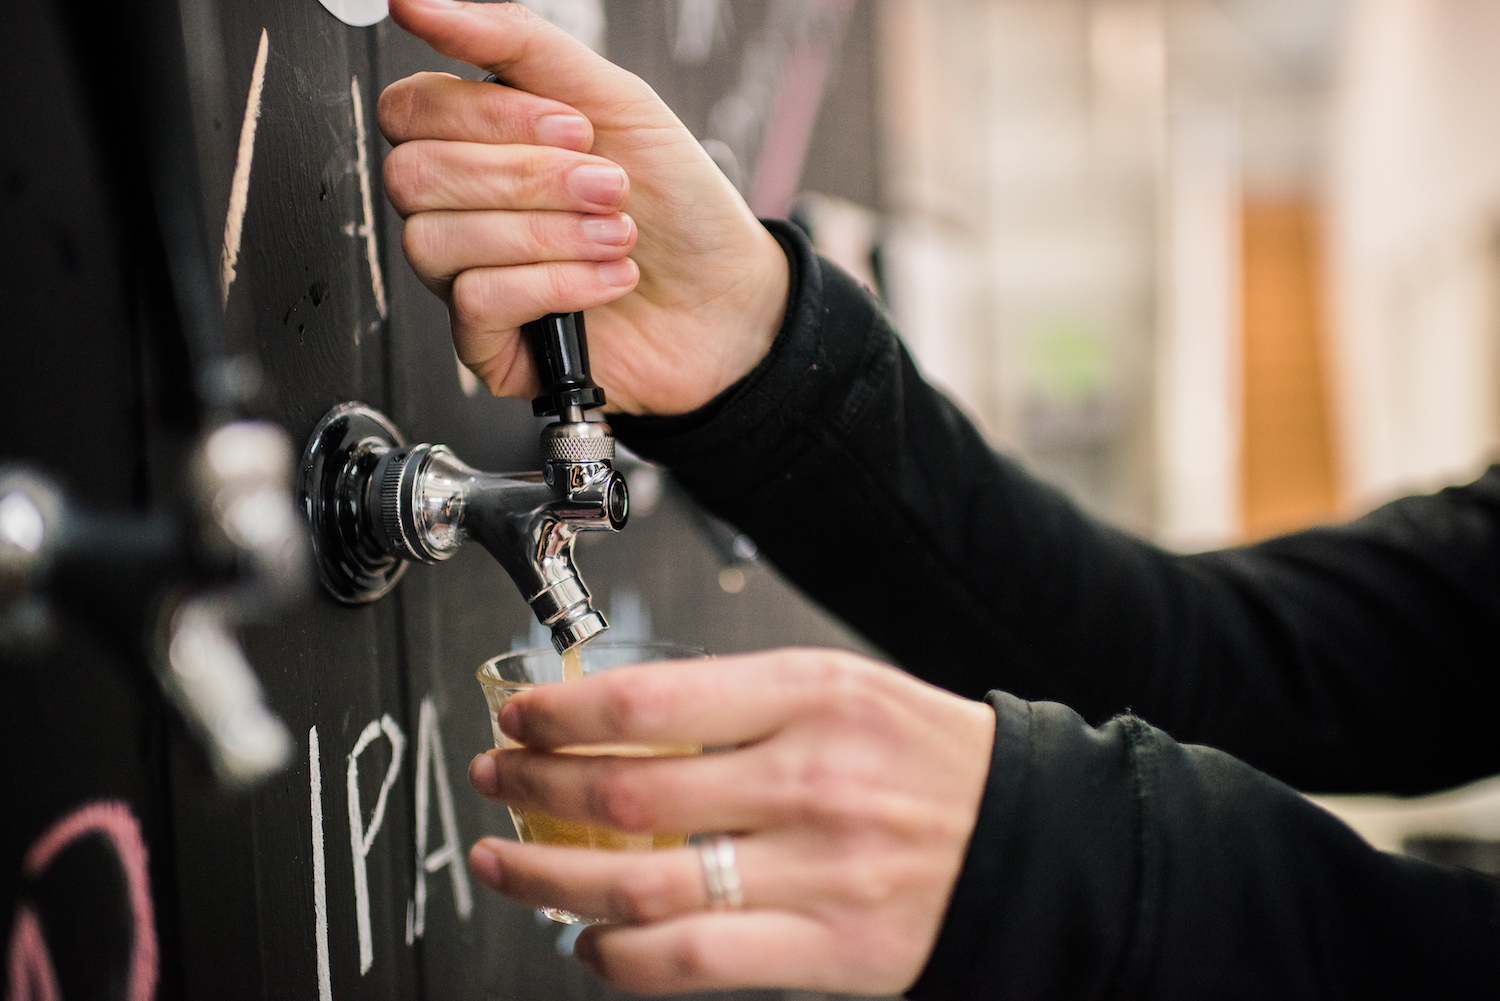 cellar door pouring beer.jpg